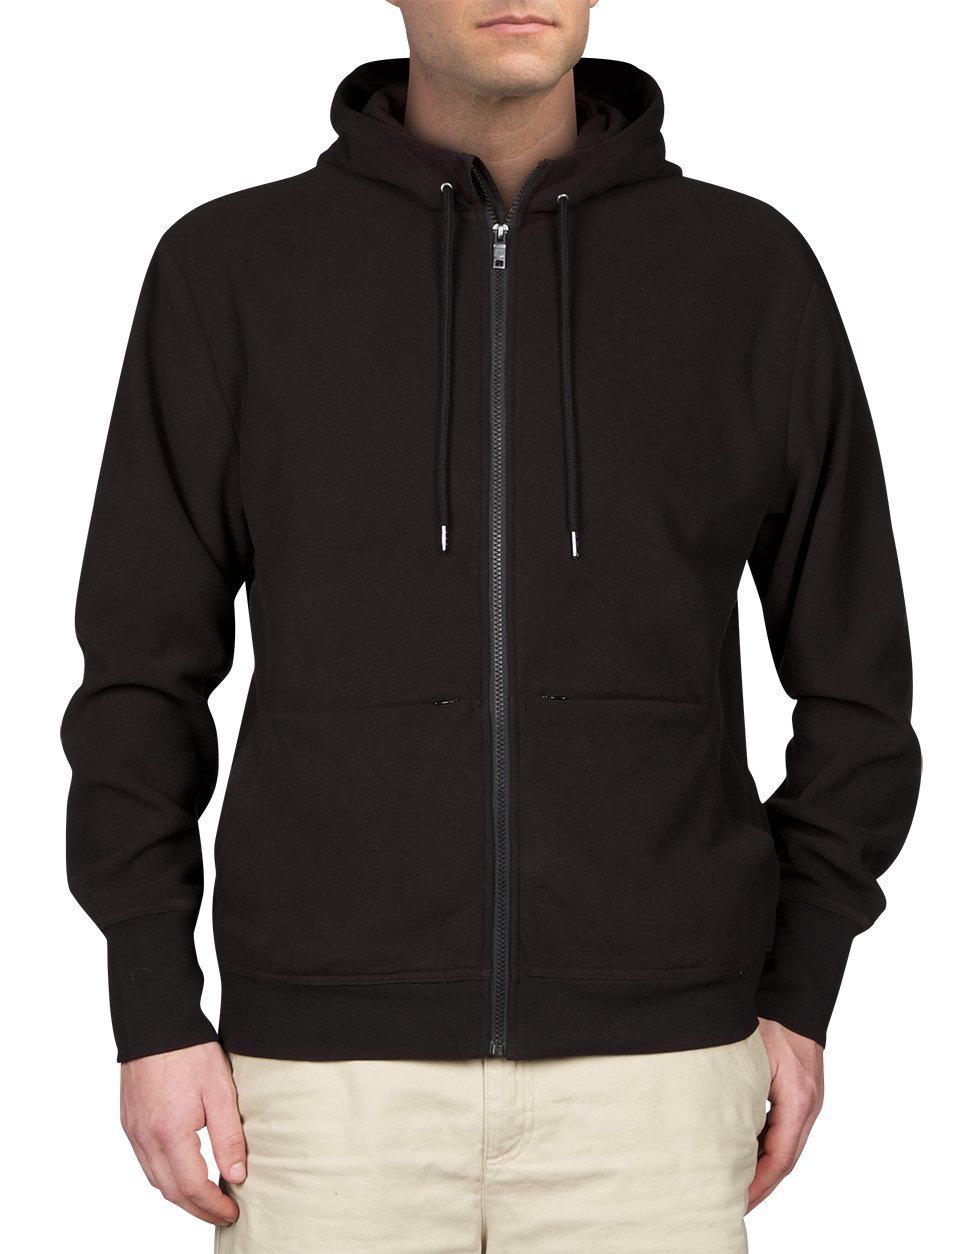 SCOTTeVEST Hoodie Microfleece - 19 Pockets - Small